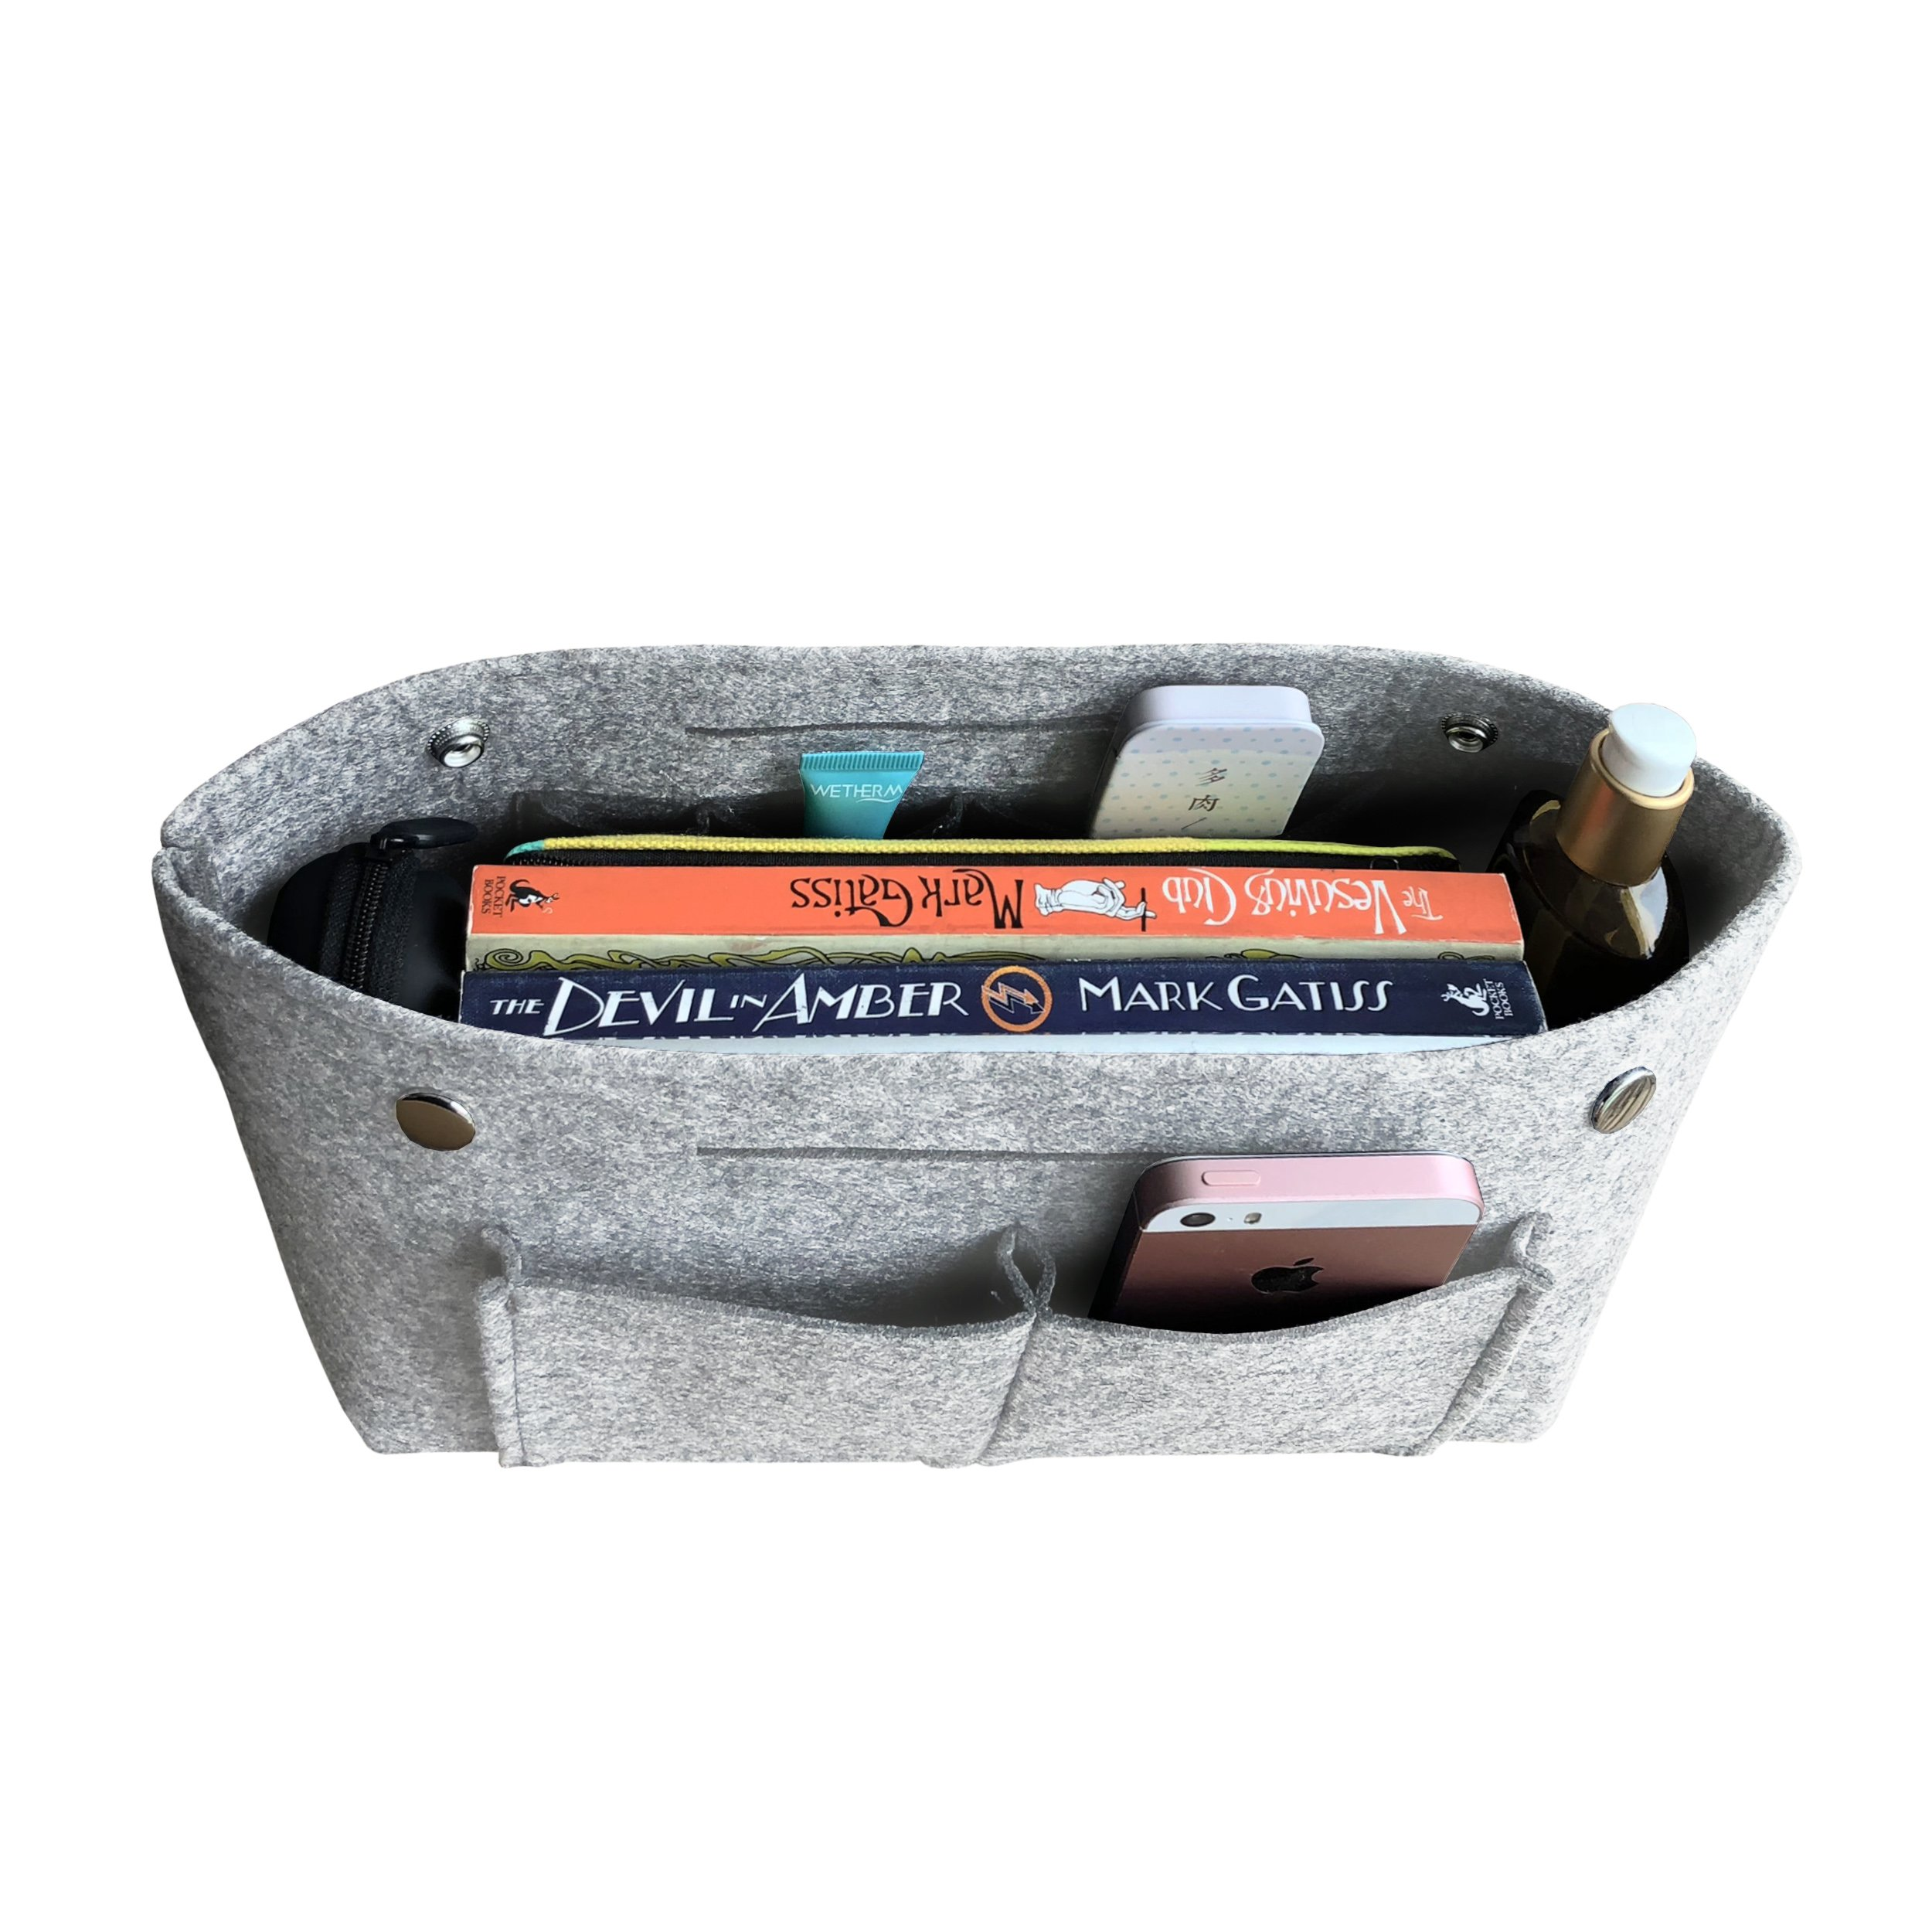 APSOONSELL Felt Tote Handbag Organizer Insert for Women, Light Grey - Large by APSOONSELL (Image #3)